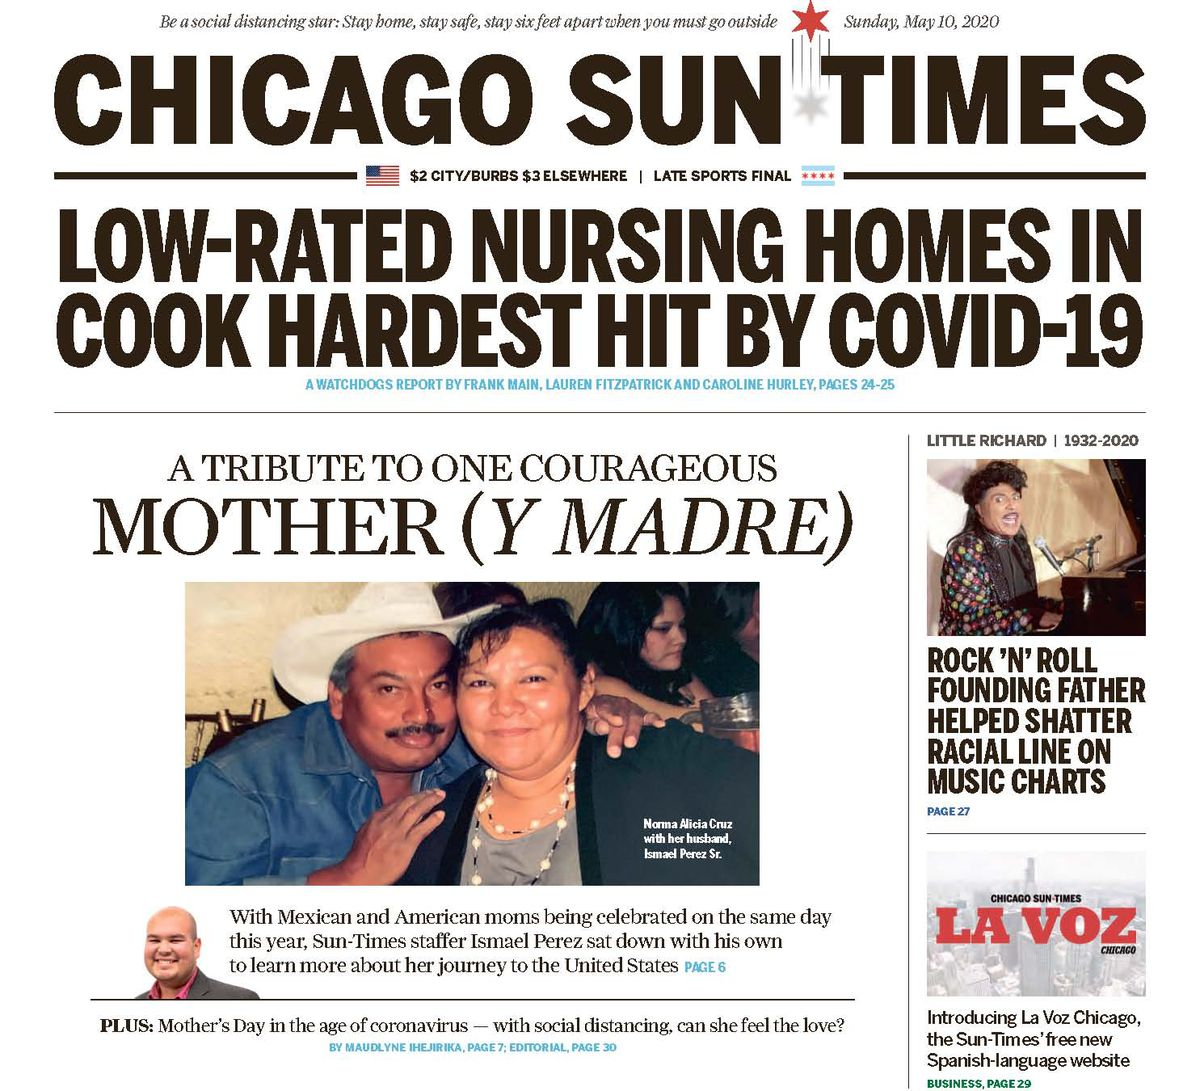 Read the Sun-Times May 10 Watchdogs report.